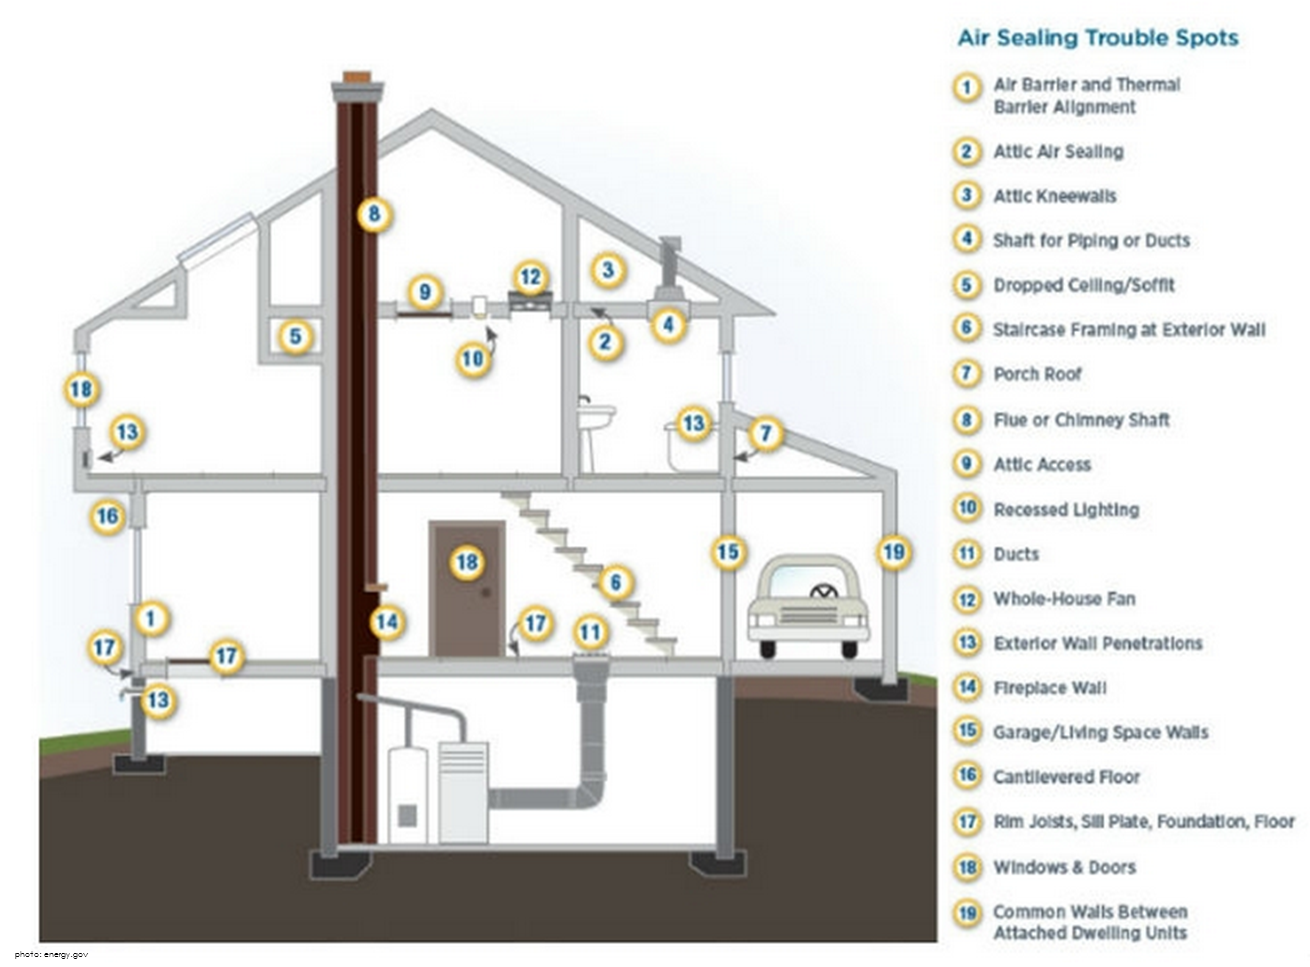 Is Energy Sneaking Out Of Your Home And Costing You Marlin Services Rim Lighting Diagram Air Sealing Trouble Spots In